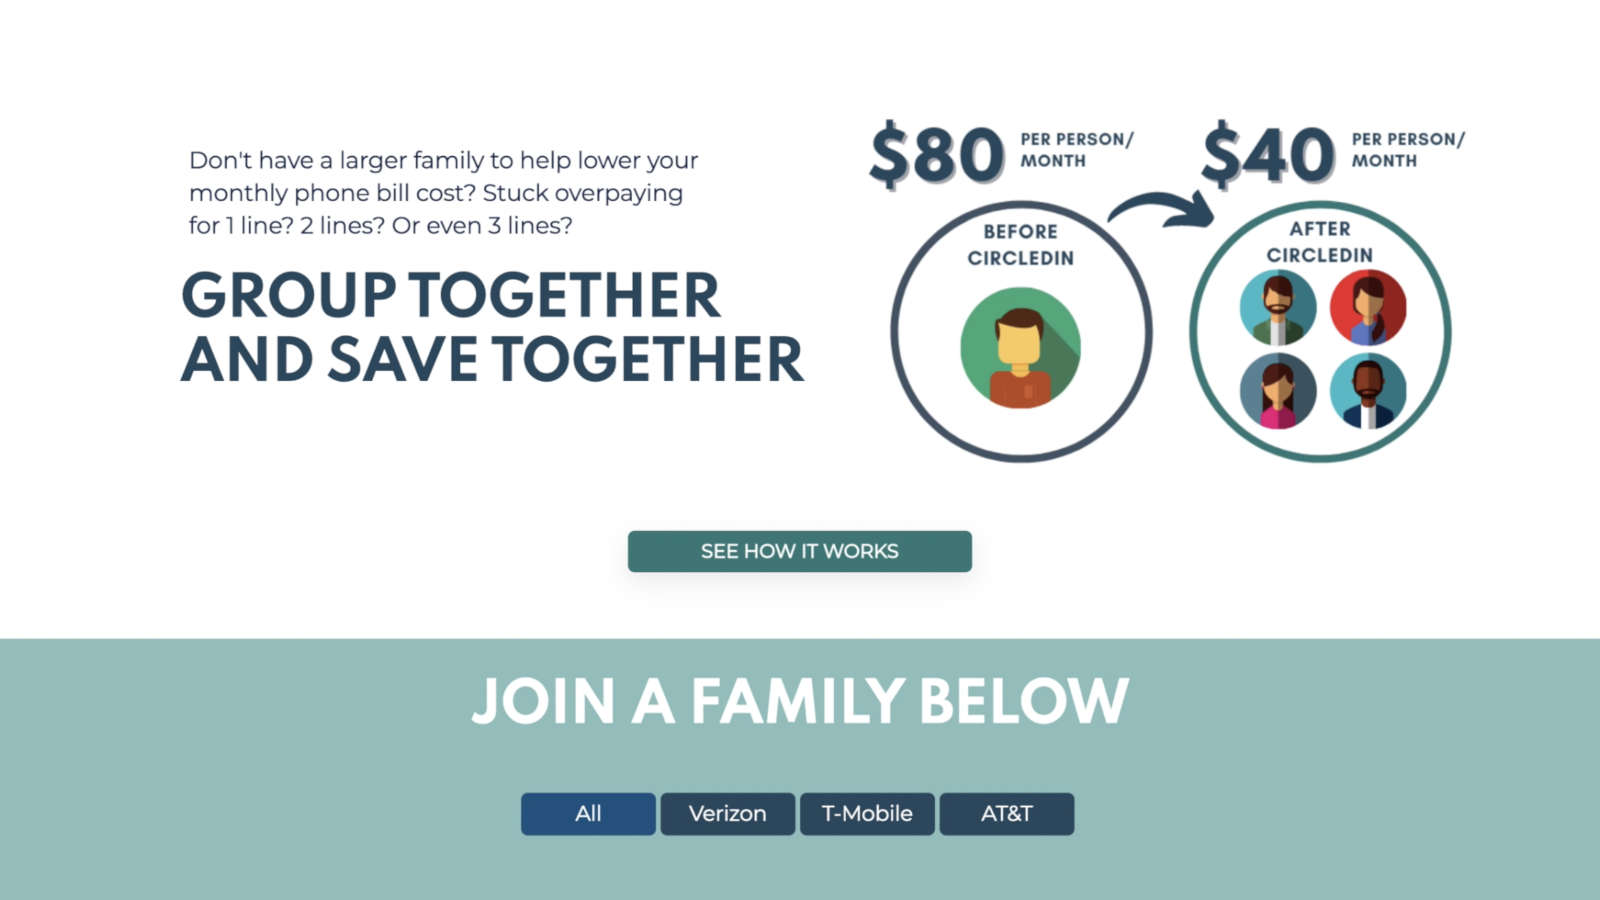 CircledIn works by allowing single-line users to join existing family plans on Verizon and T-Mobile to take advantage of group savings